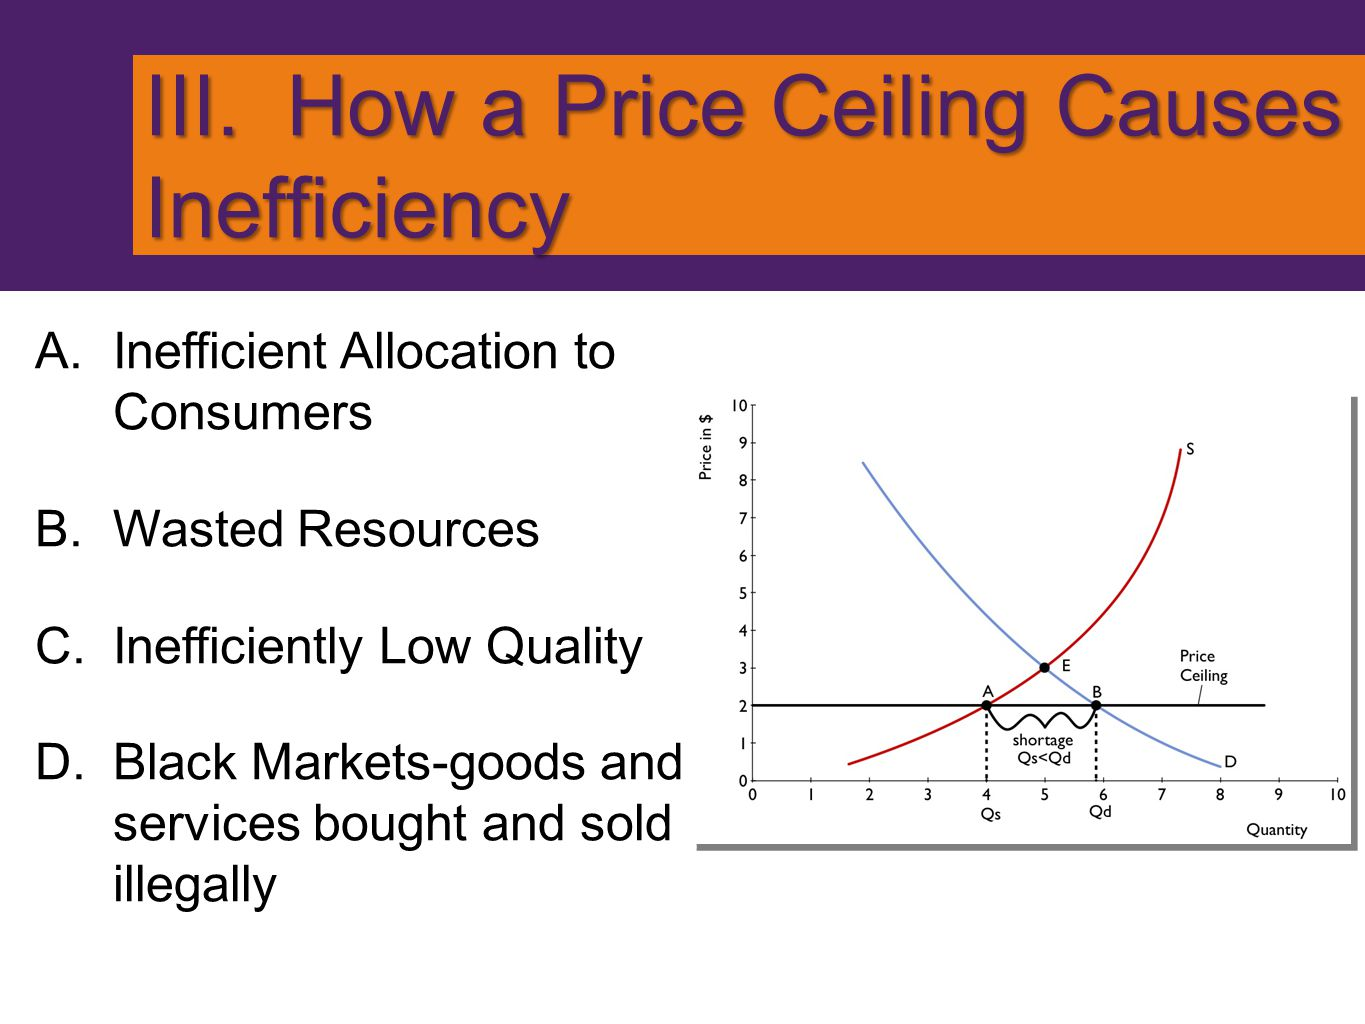 III. How a Price Ceiling Causes Inefficiency